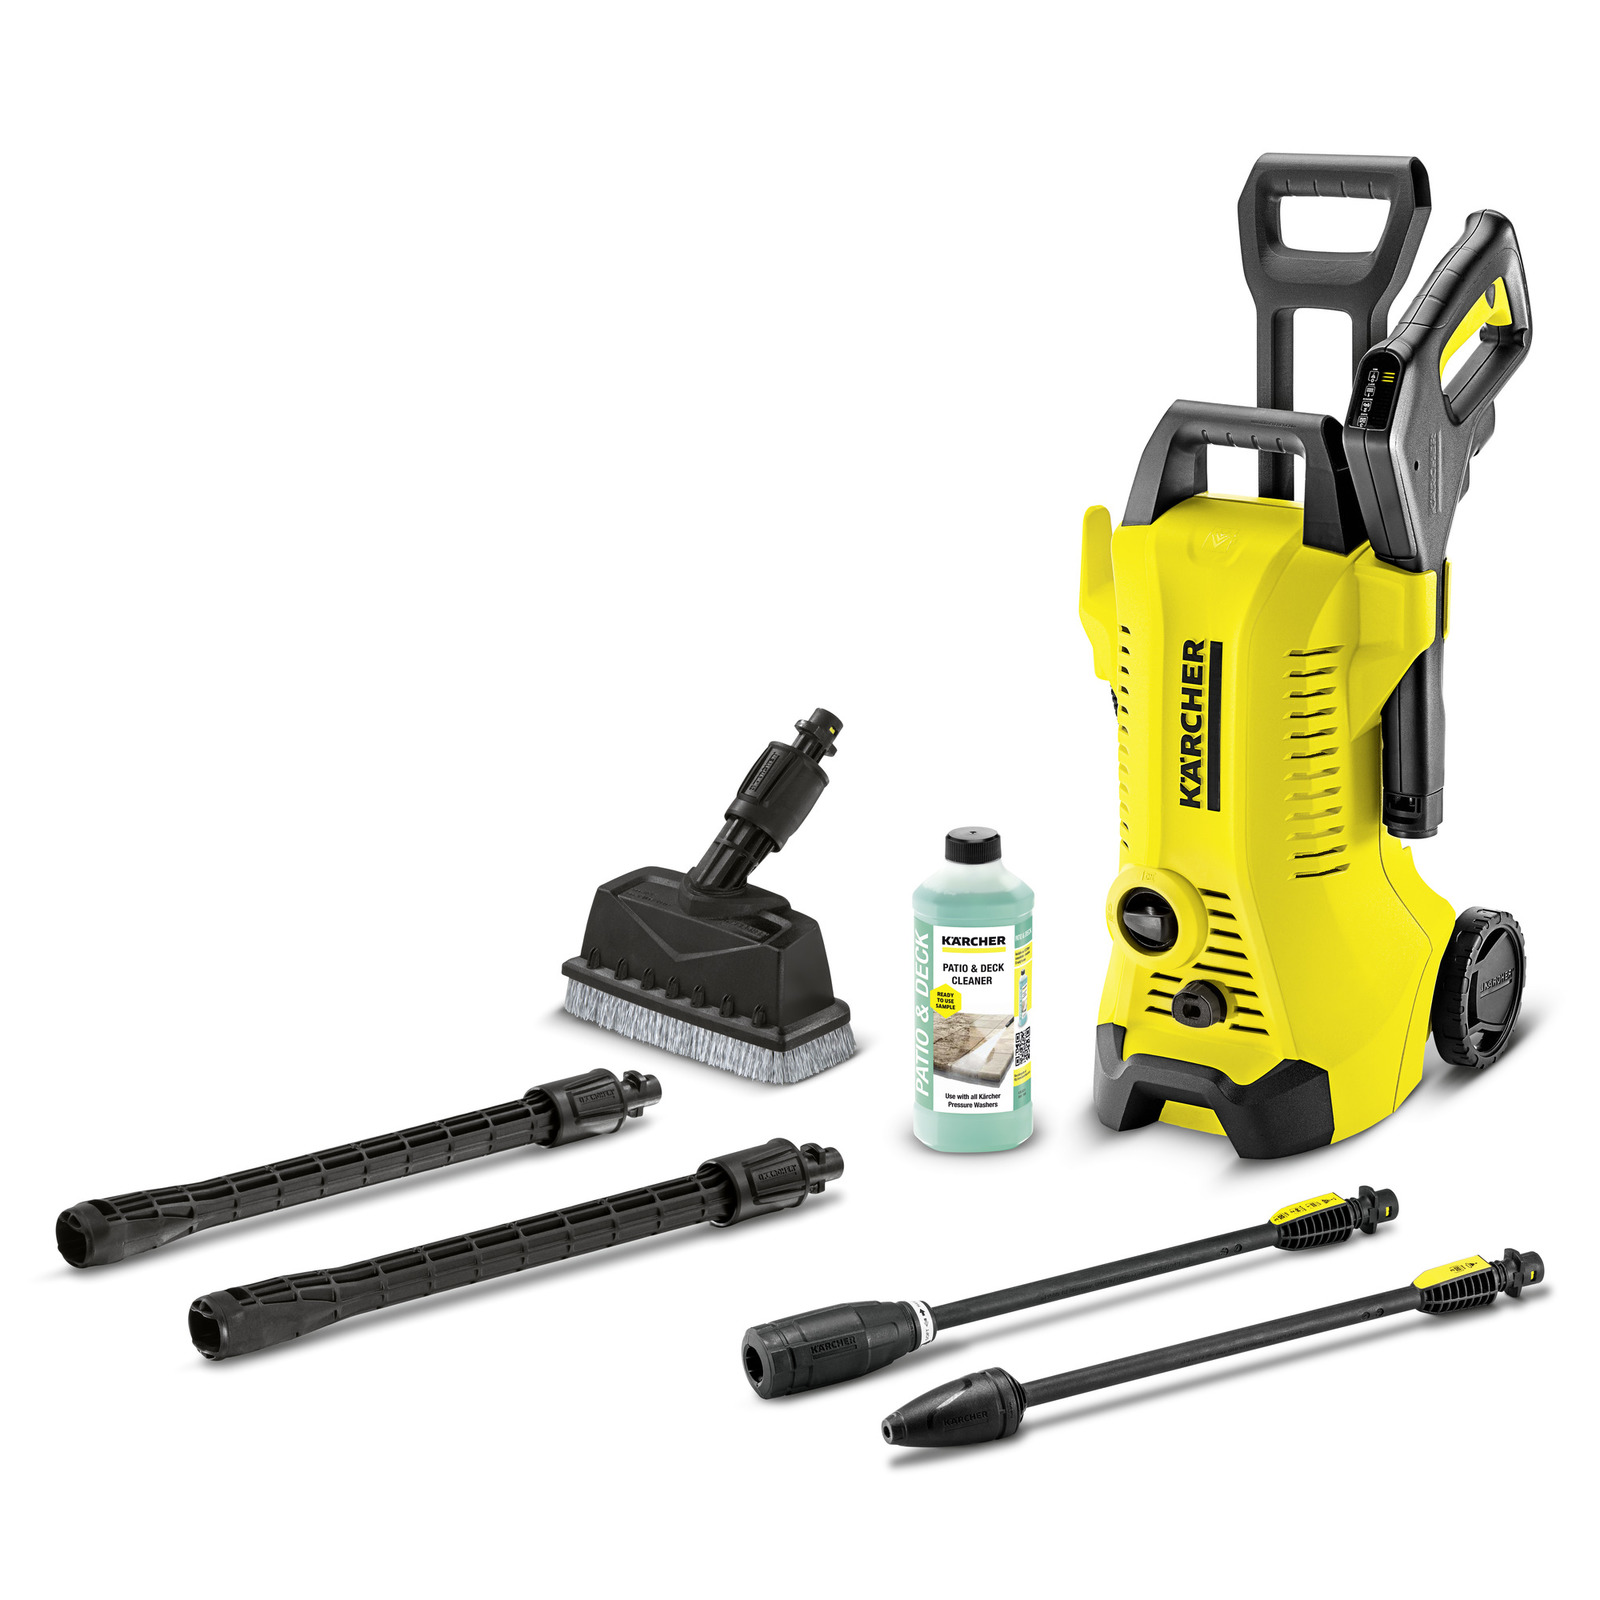 pressure washer k 3 full control deck karcher australia. Black Bedroom Furniture Sets. Home Design Ideas